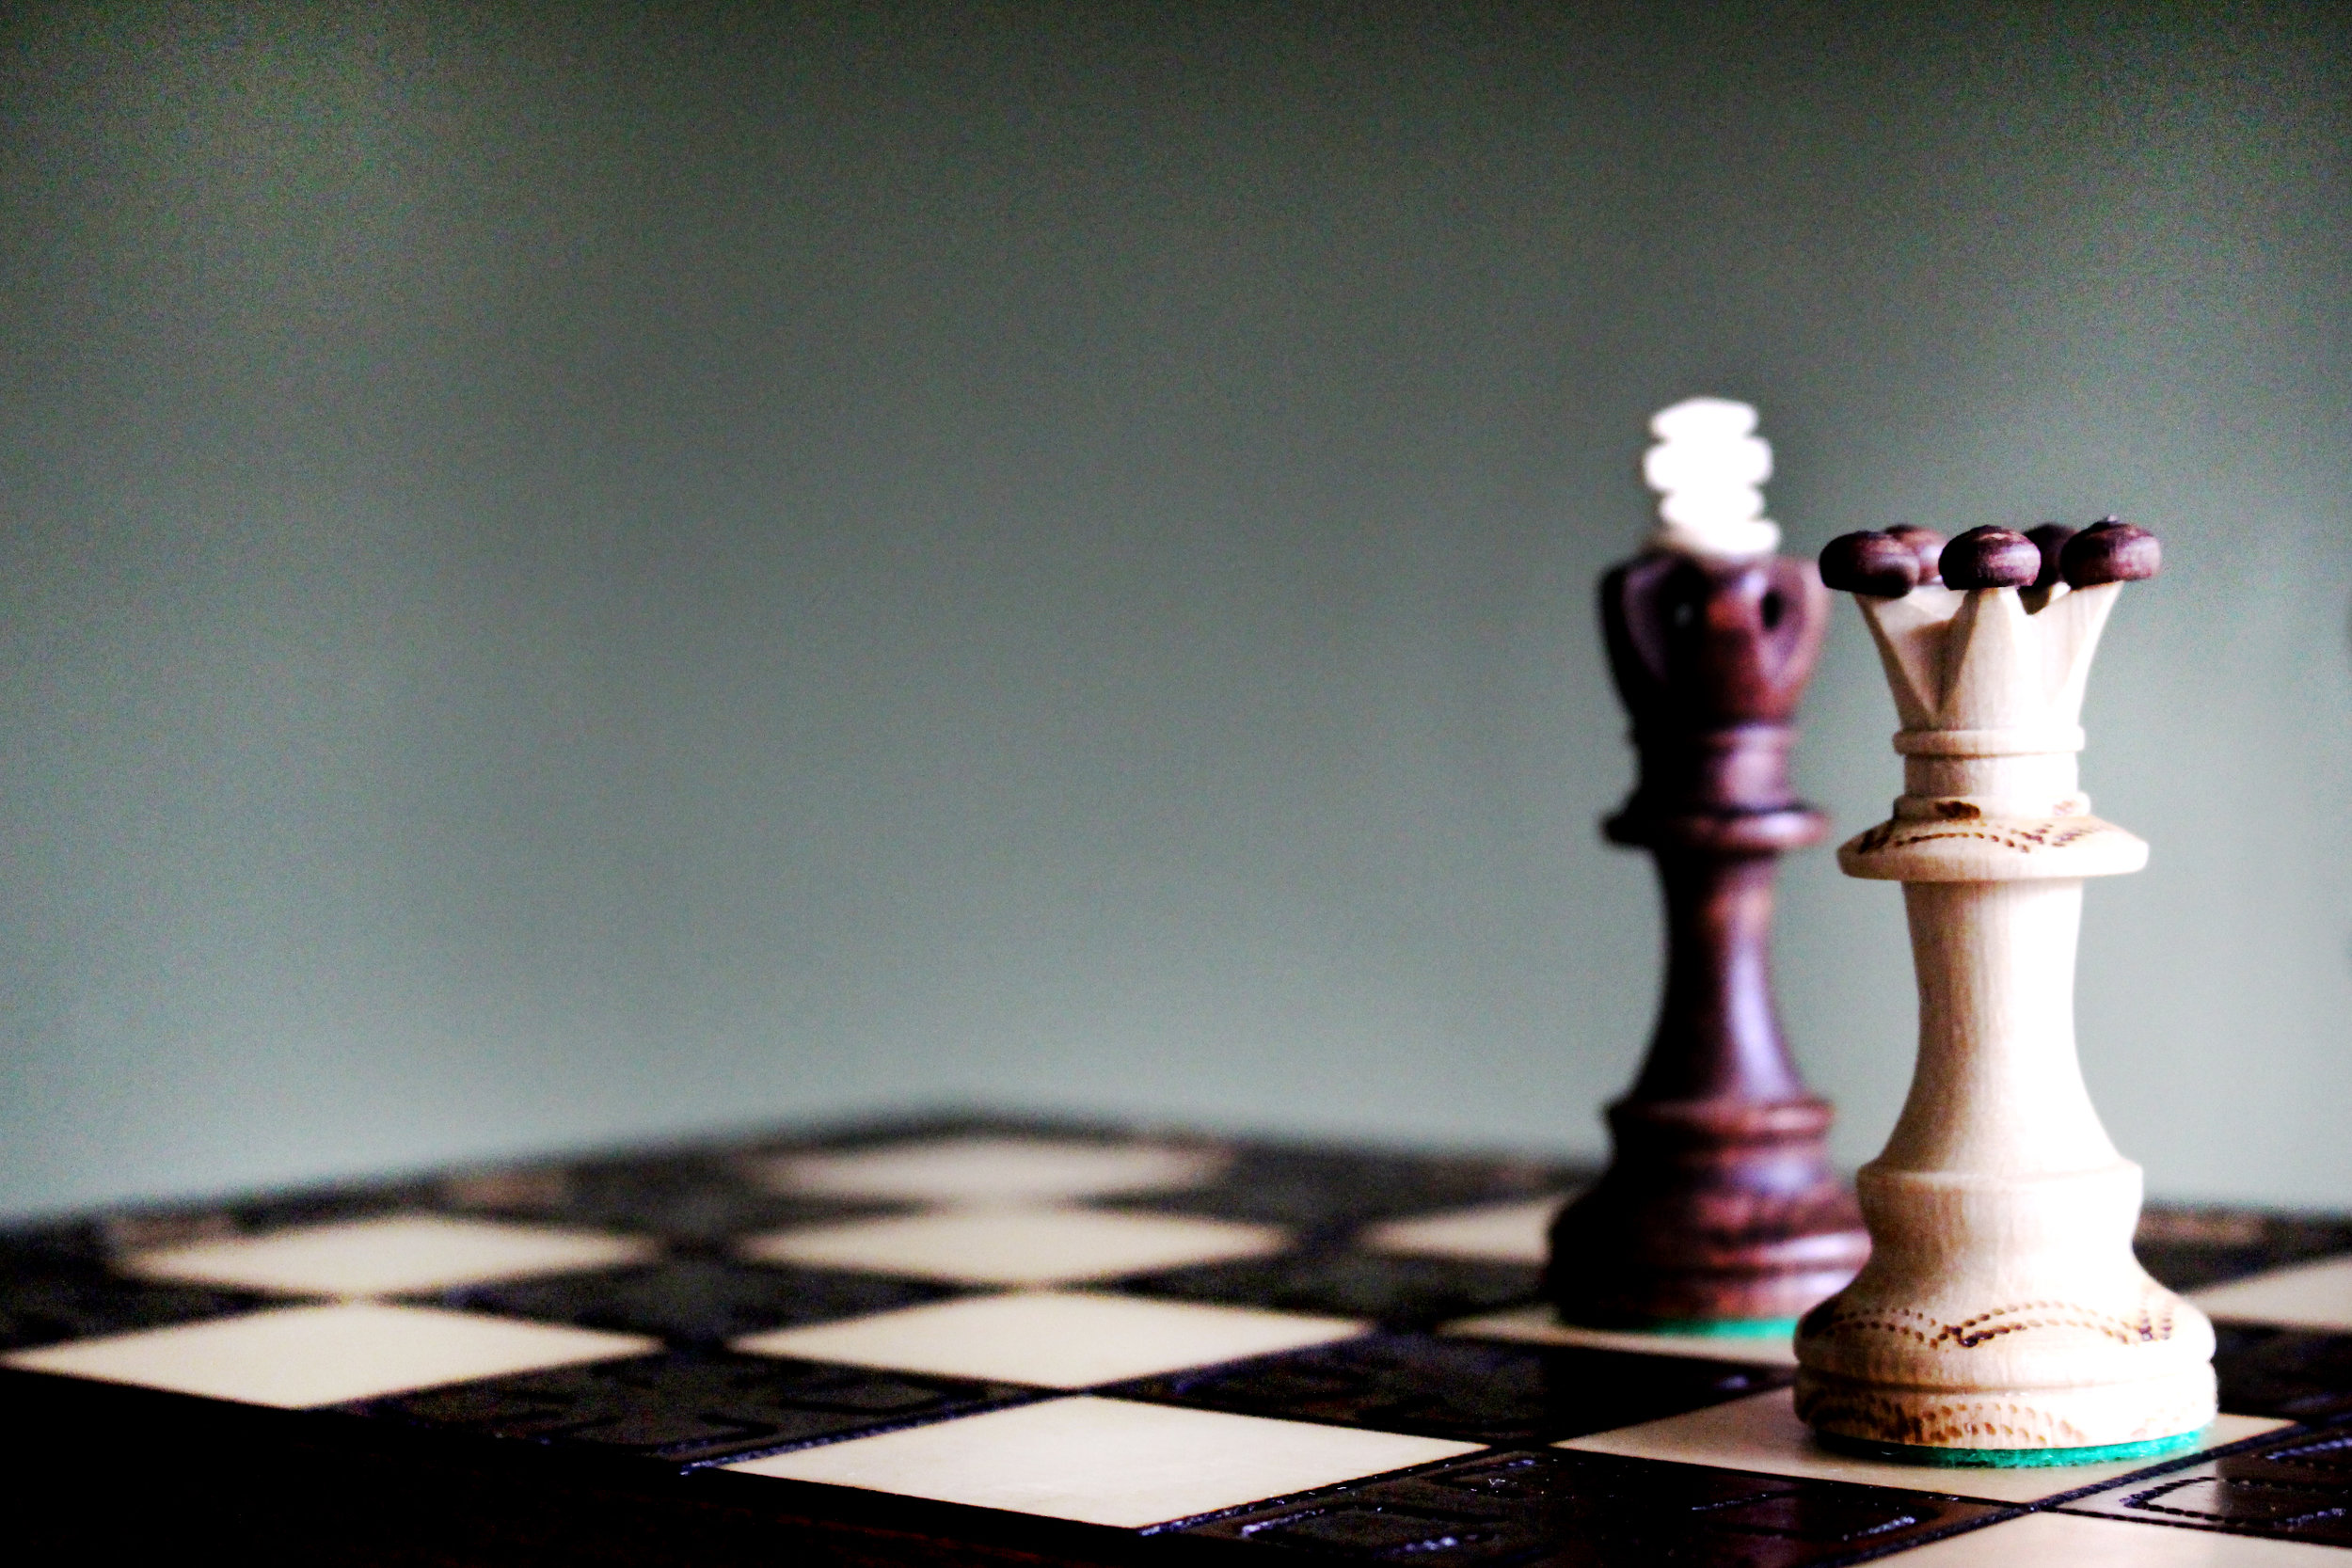 The King piece on a chess board representing law 34.